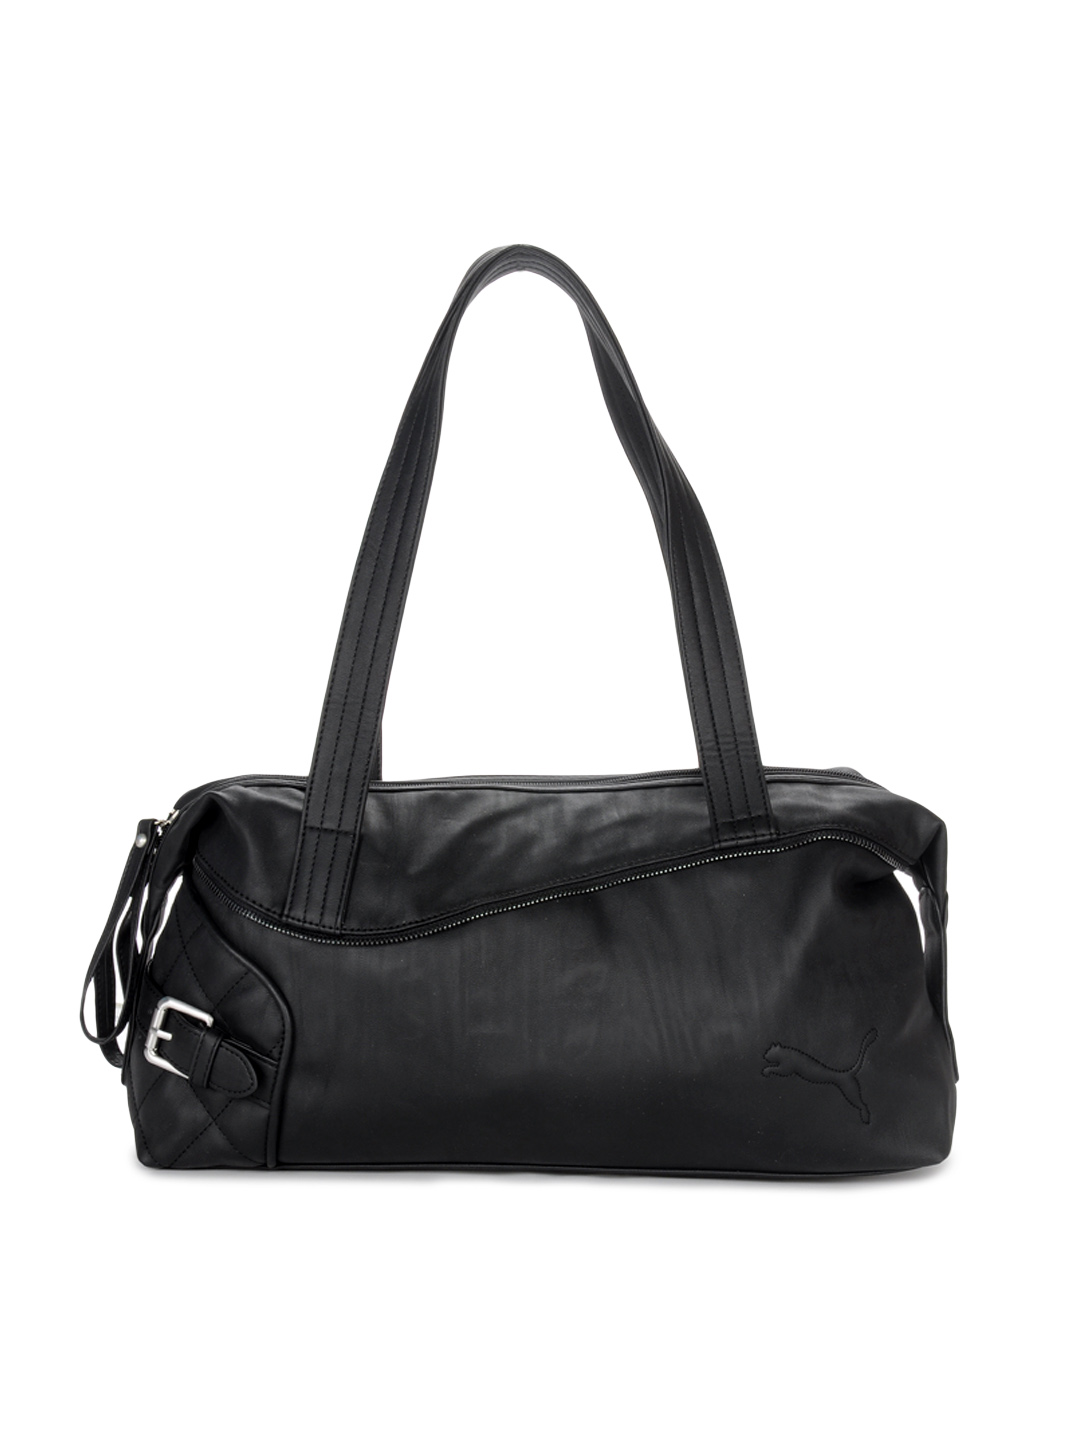 Puma Women Black Handbag